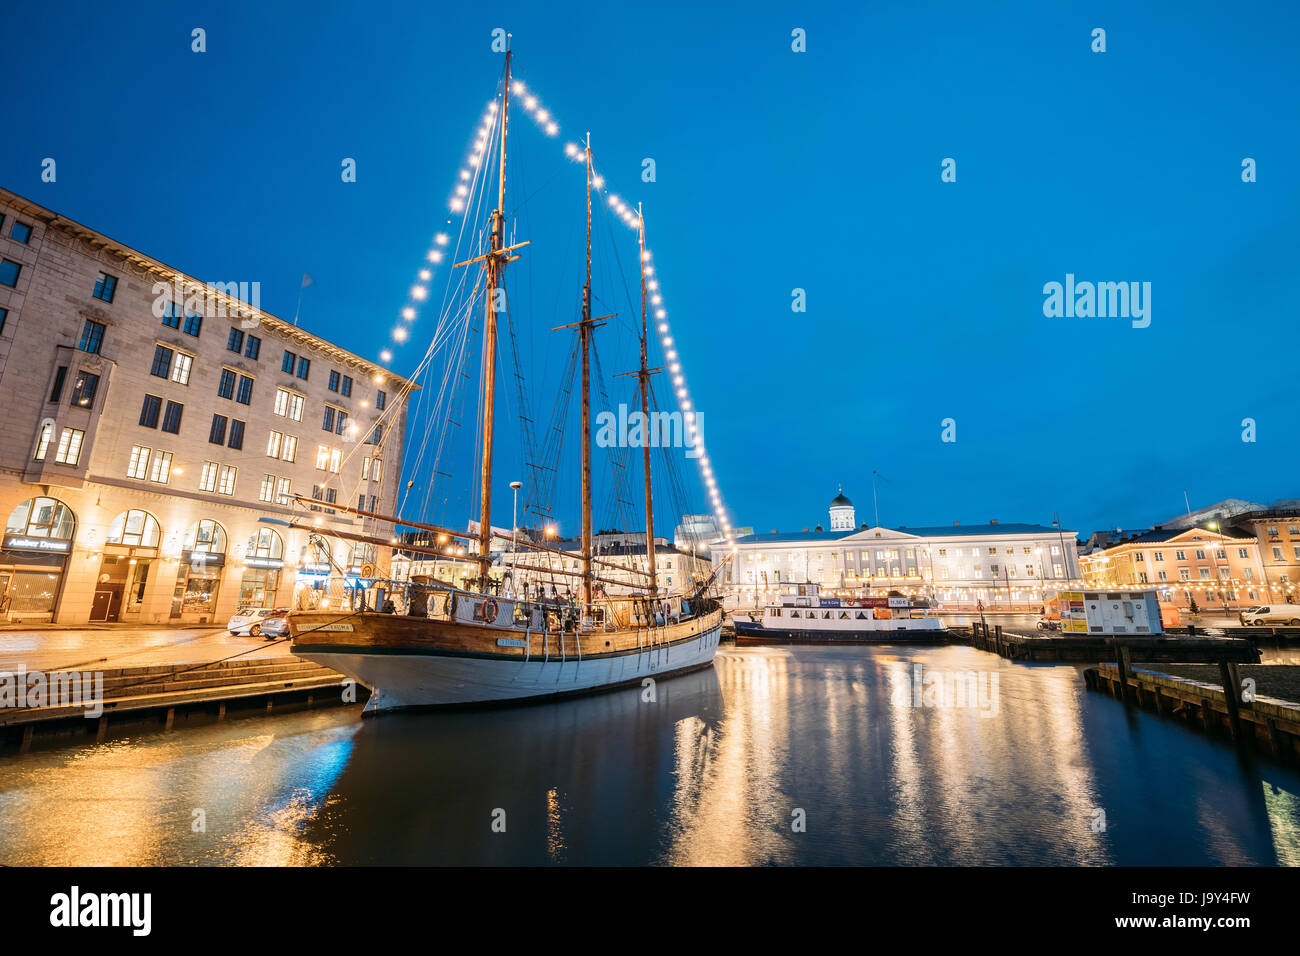 Helsinki, Finland - December 9, 2016: Old Wooden Sailing Vessel Ship Schooner Is Moored To The City Pier, Jetty. - Stock Image